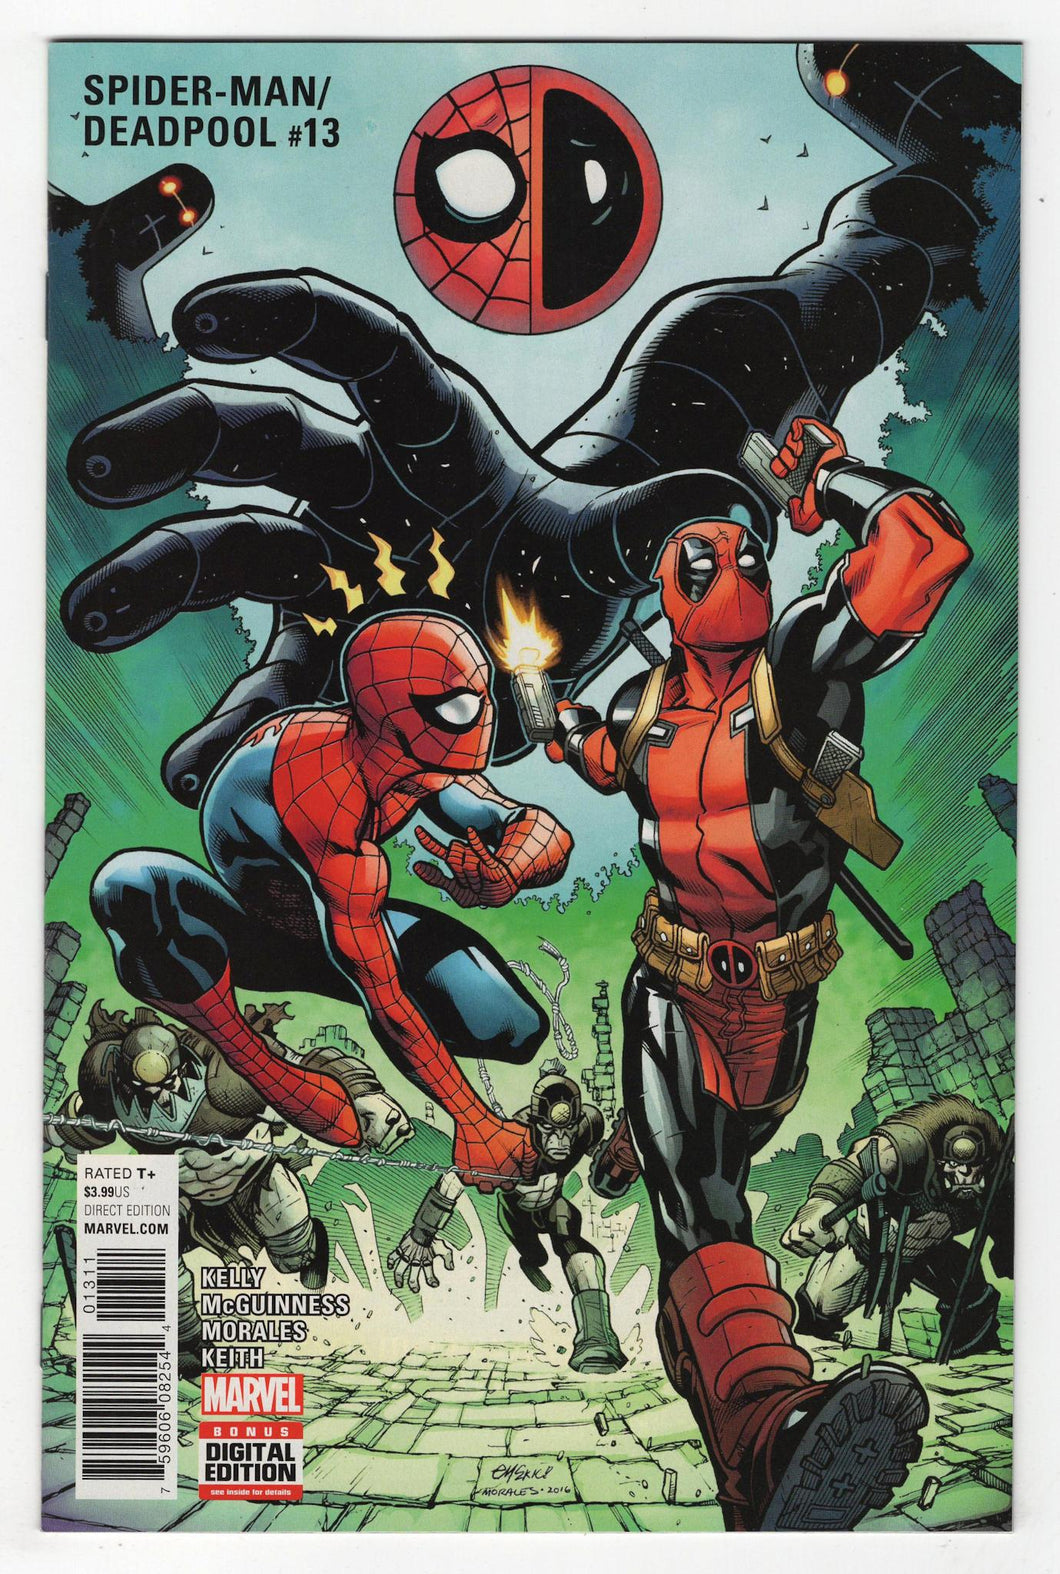 Spider-Man Deadpool #13 Cover Front